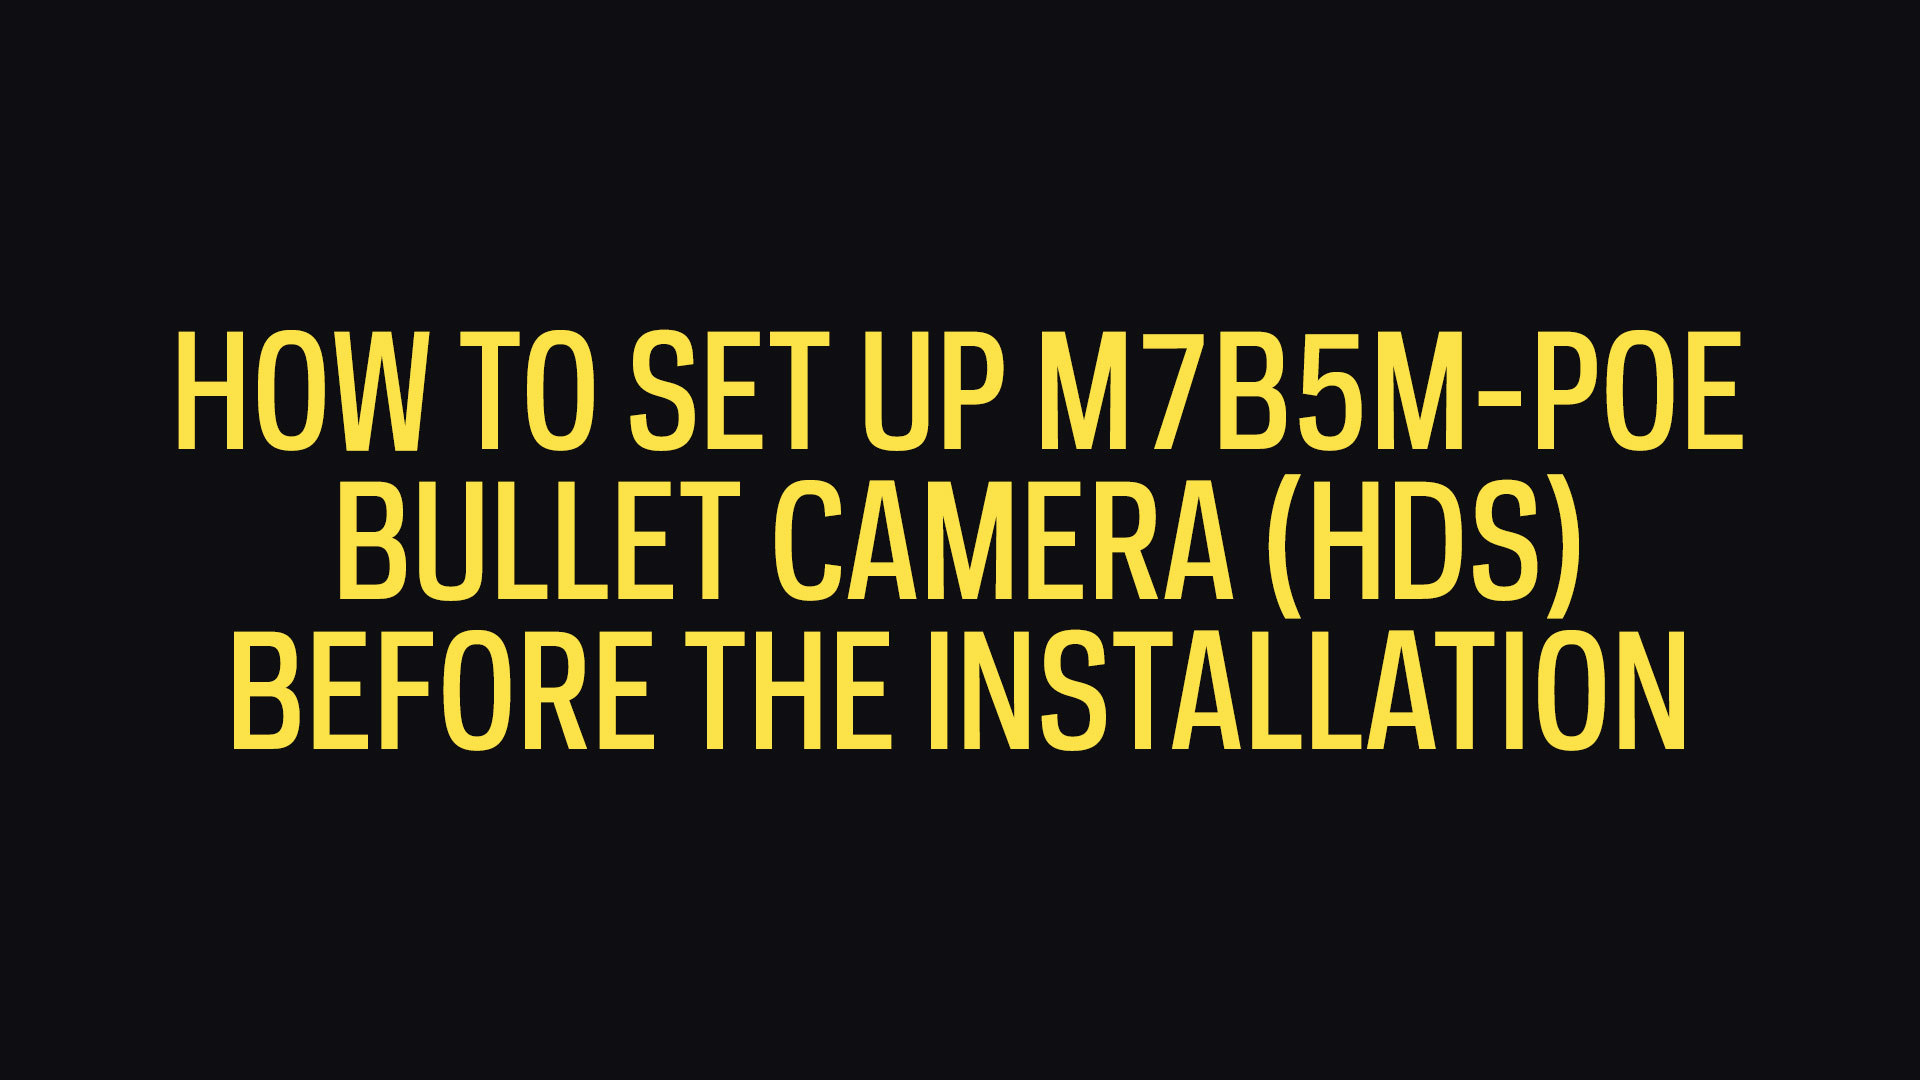 How To Set Up 5MP Bullet Camera (HDS) Before The Installation